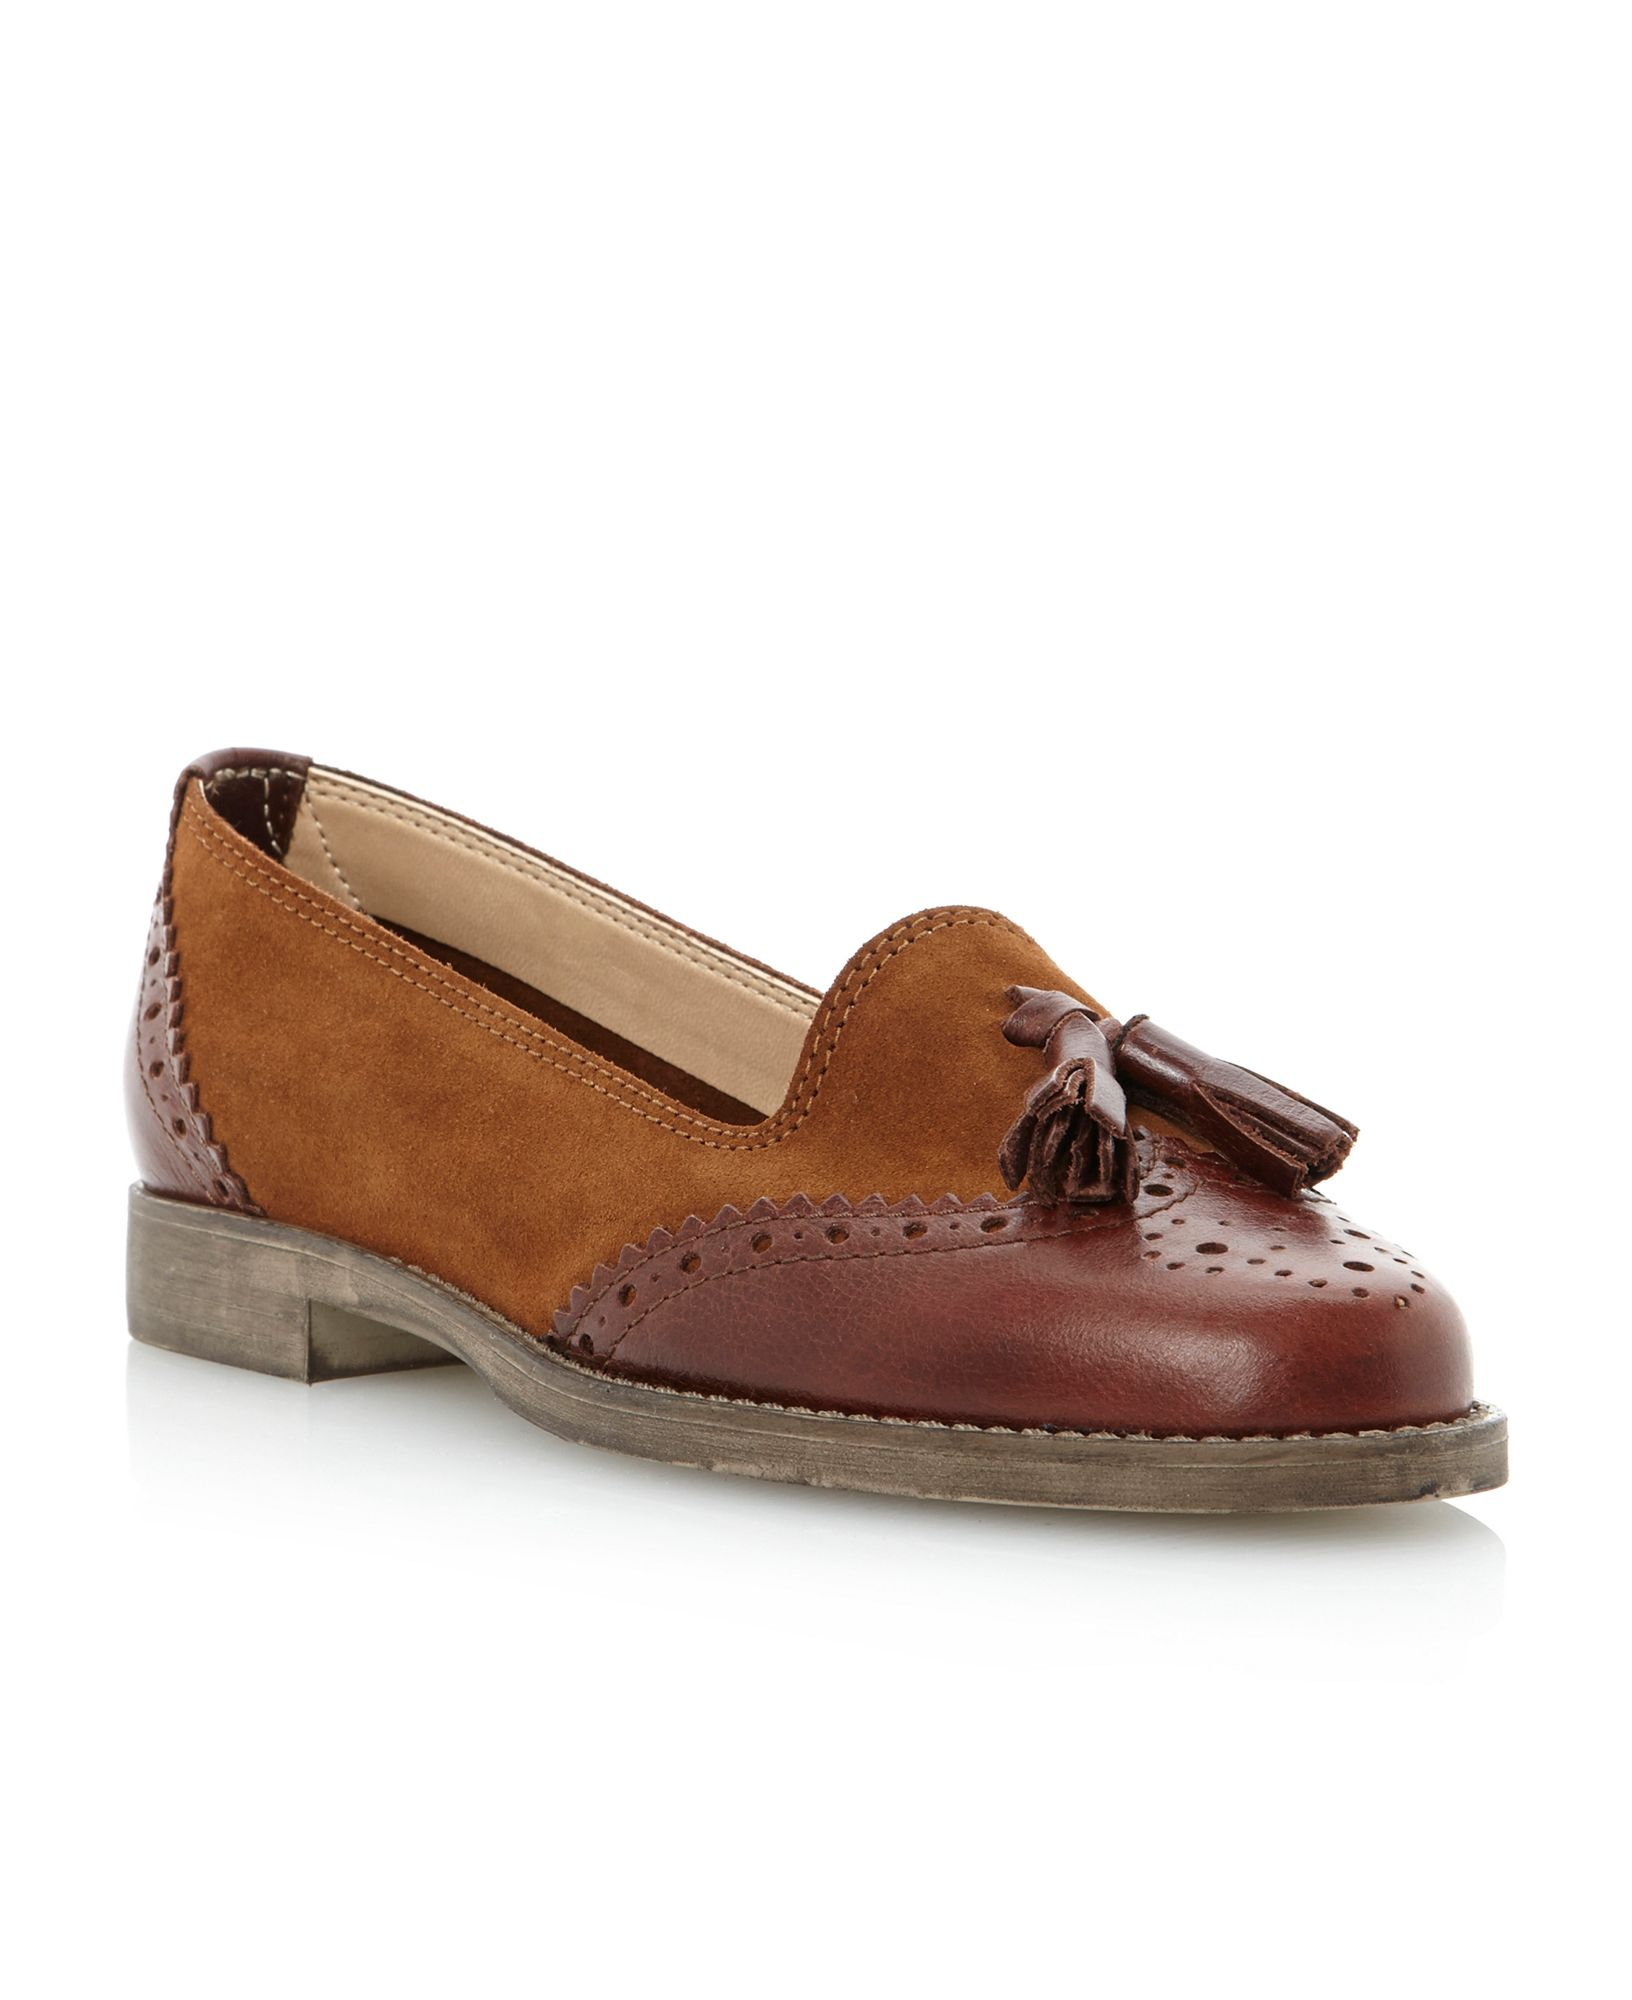 Dune Lazarus Mixed Material Tassel Loafer Shoes In Brown For Men | Lyst